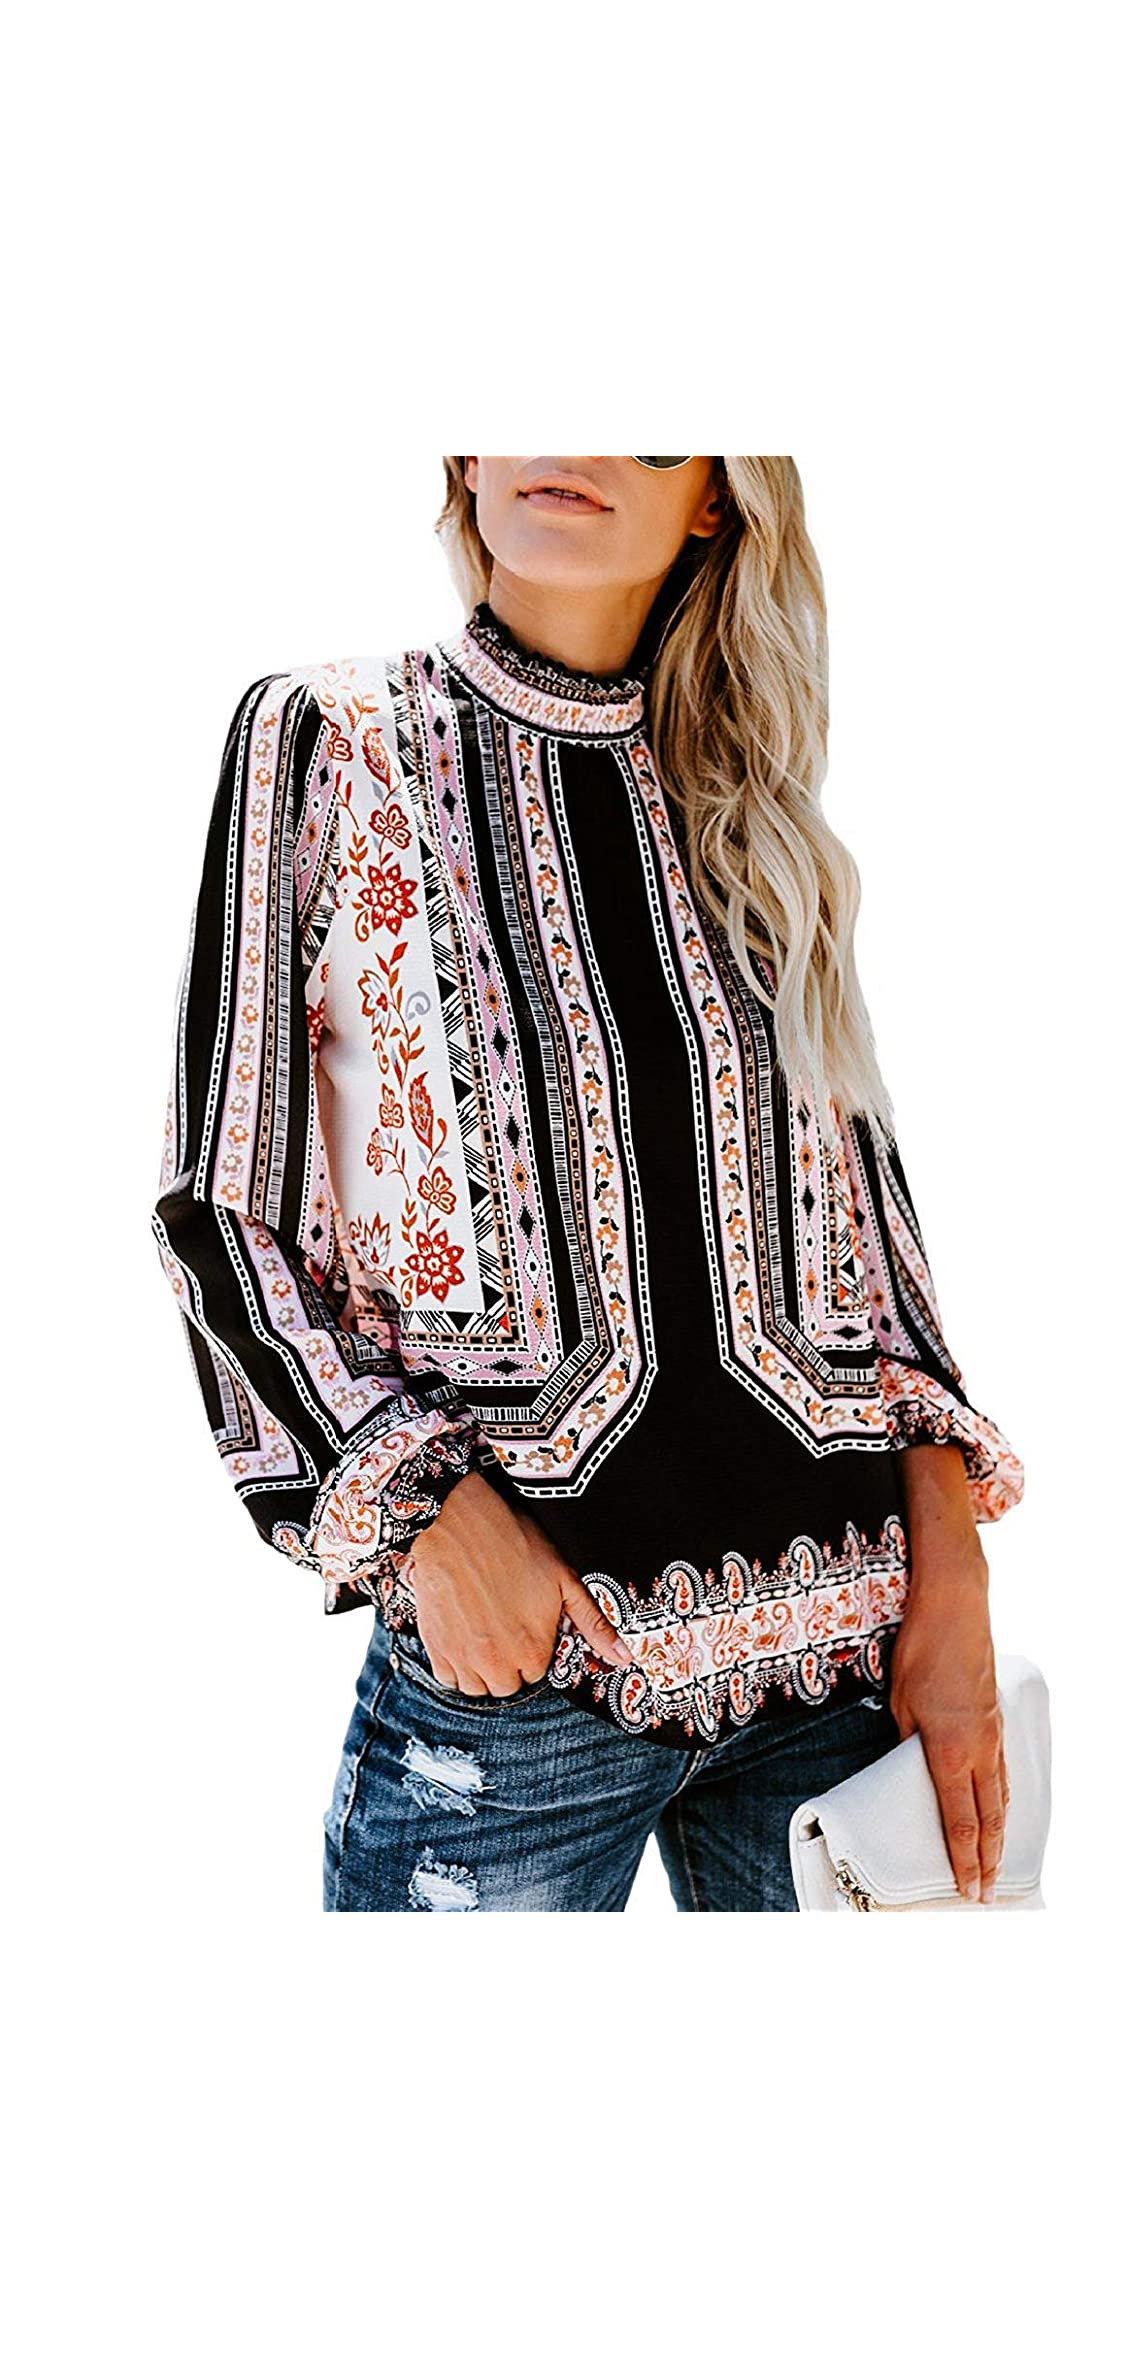 Long Sleeve Chiffon Blouse Women's Loose Cuffed Sleeve Layered